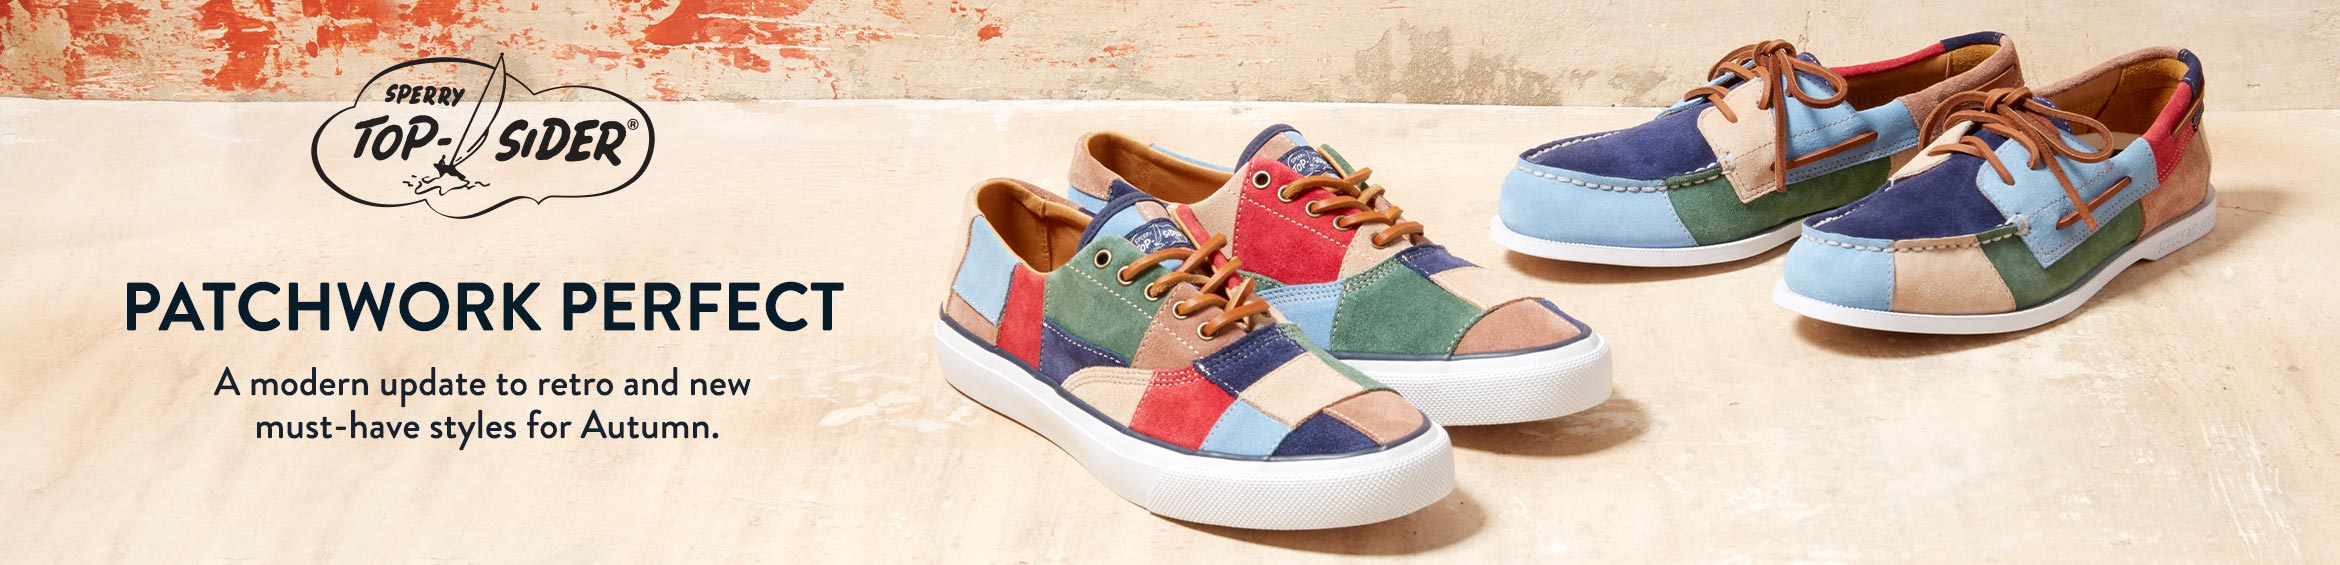 The Sperry Top Sider - Patchwork Perfect | A modern update to retro and new must-have styles for Autumn.